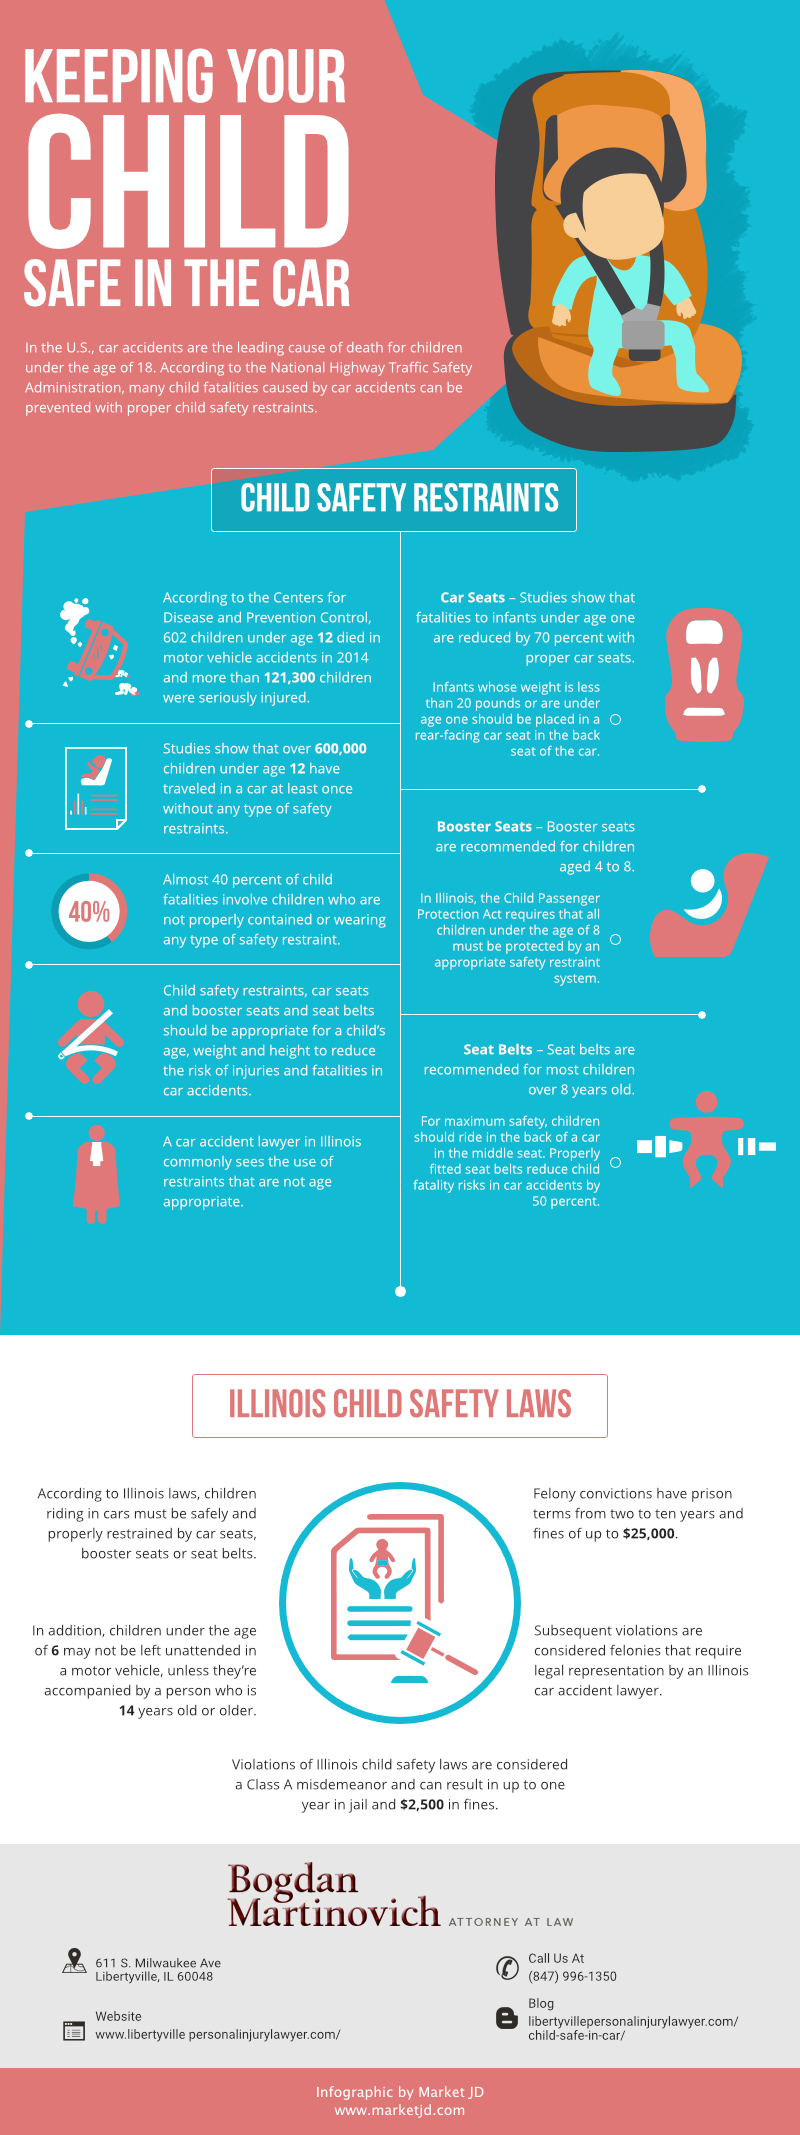 infographic_Child Safety in the Car